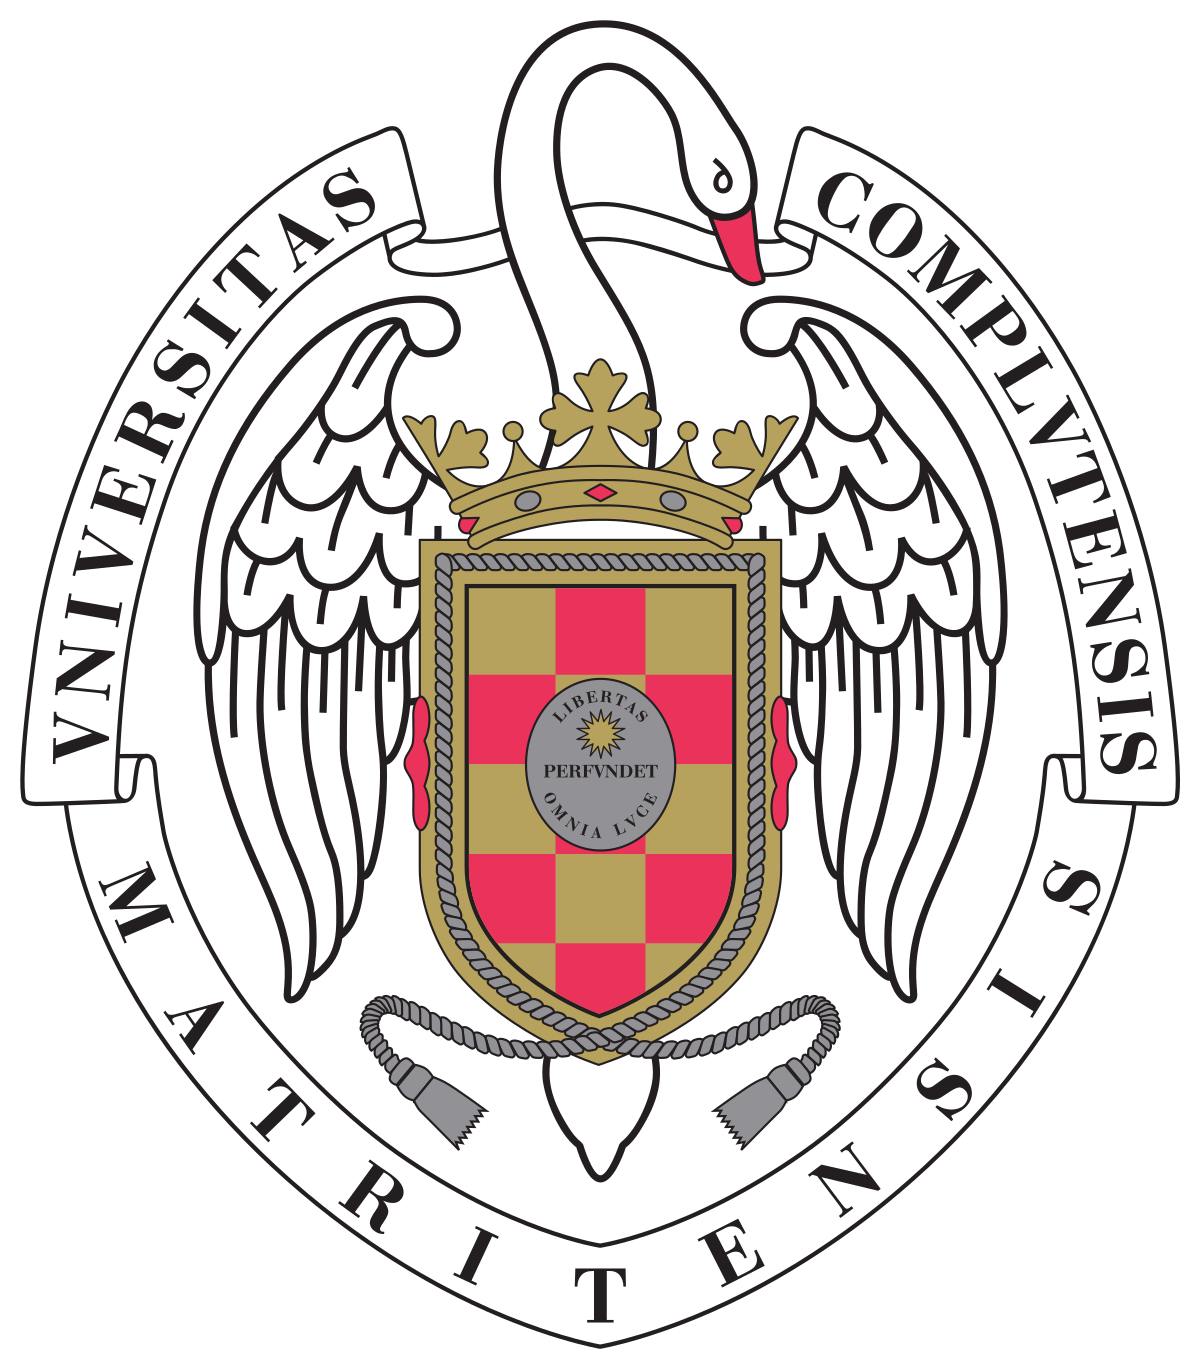 University Complutense of Madrid logo